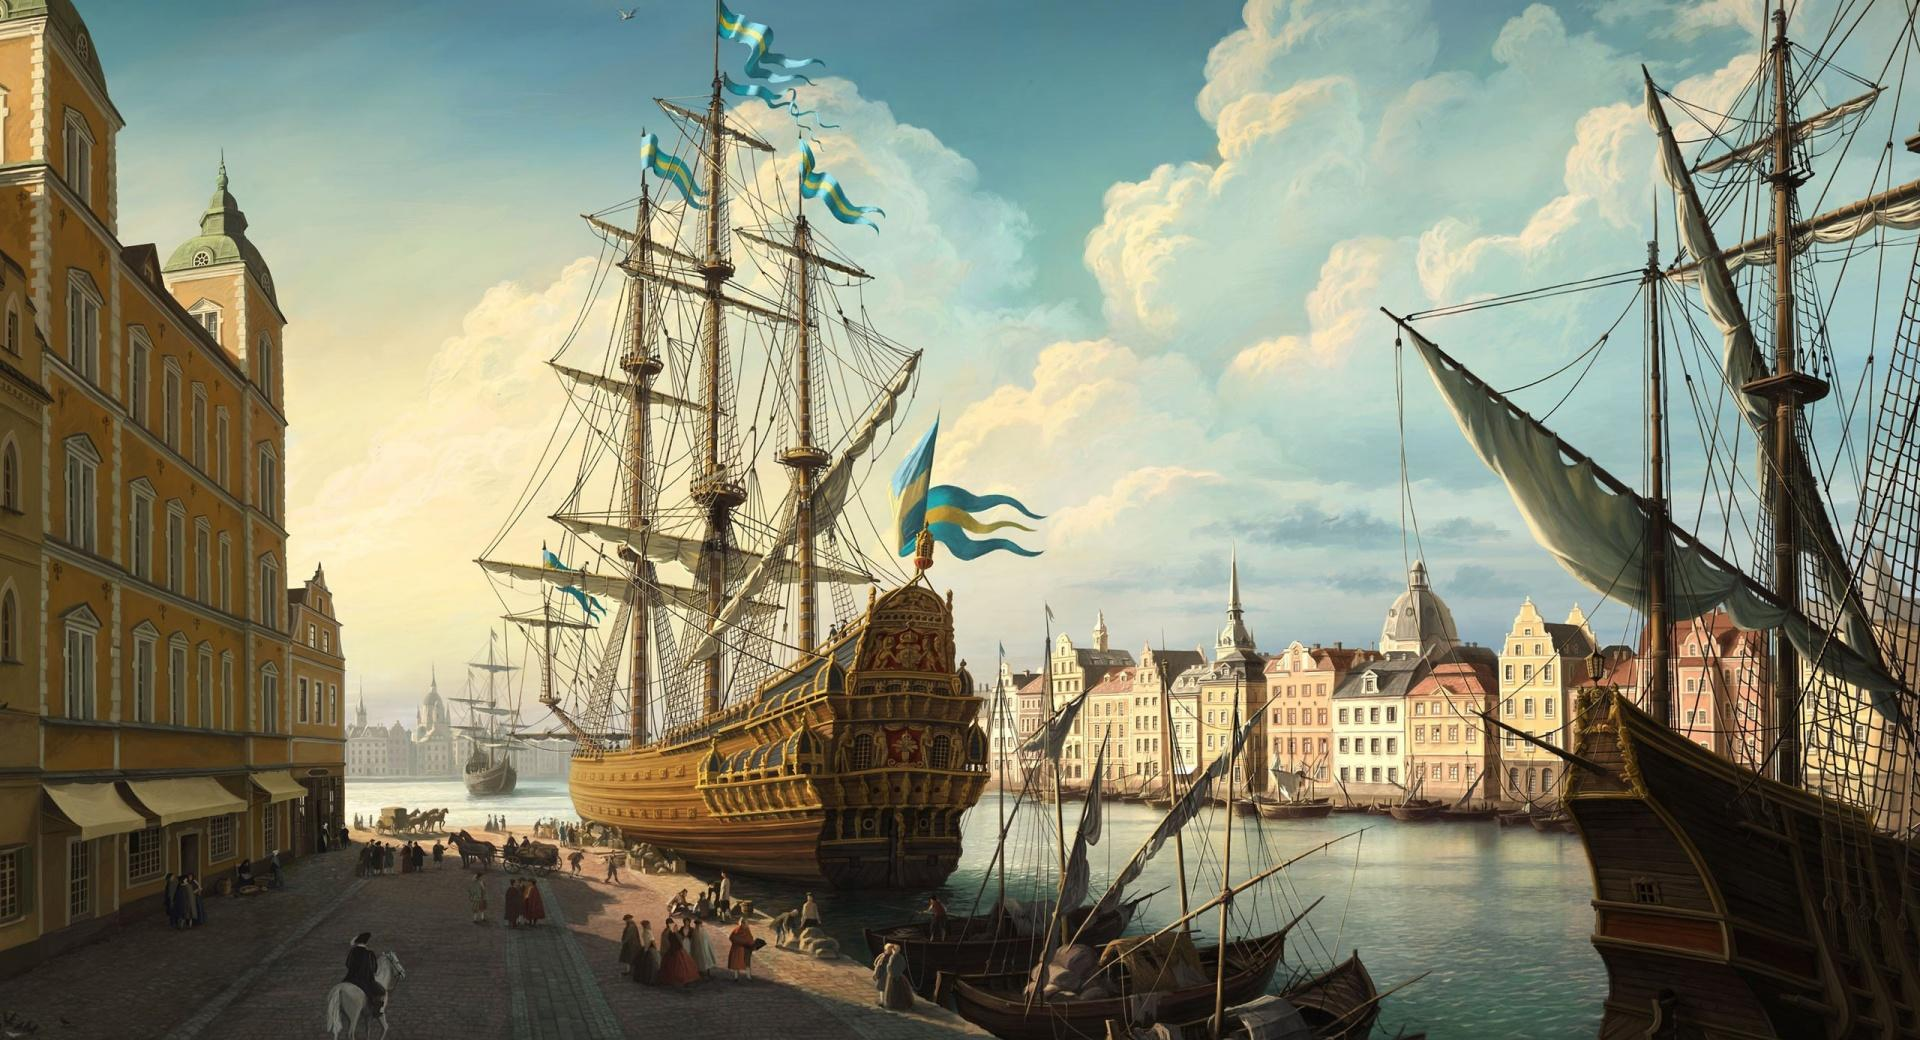 Port Painting wallpapers HD quality